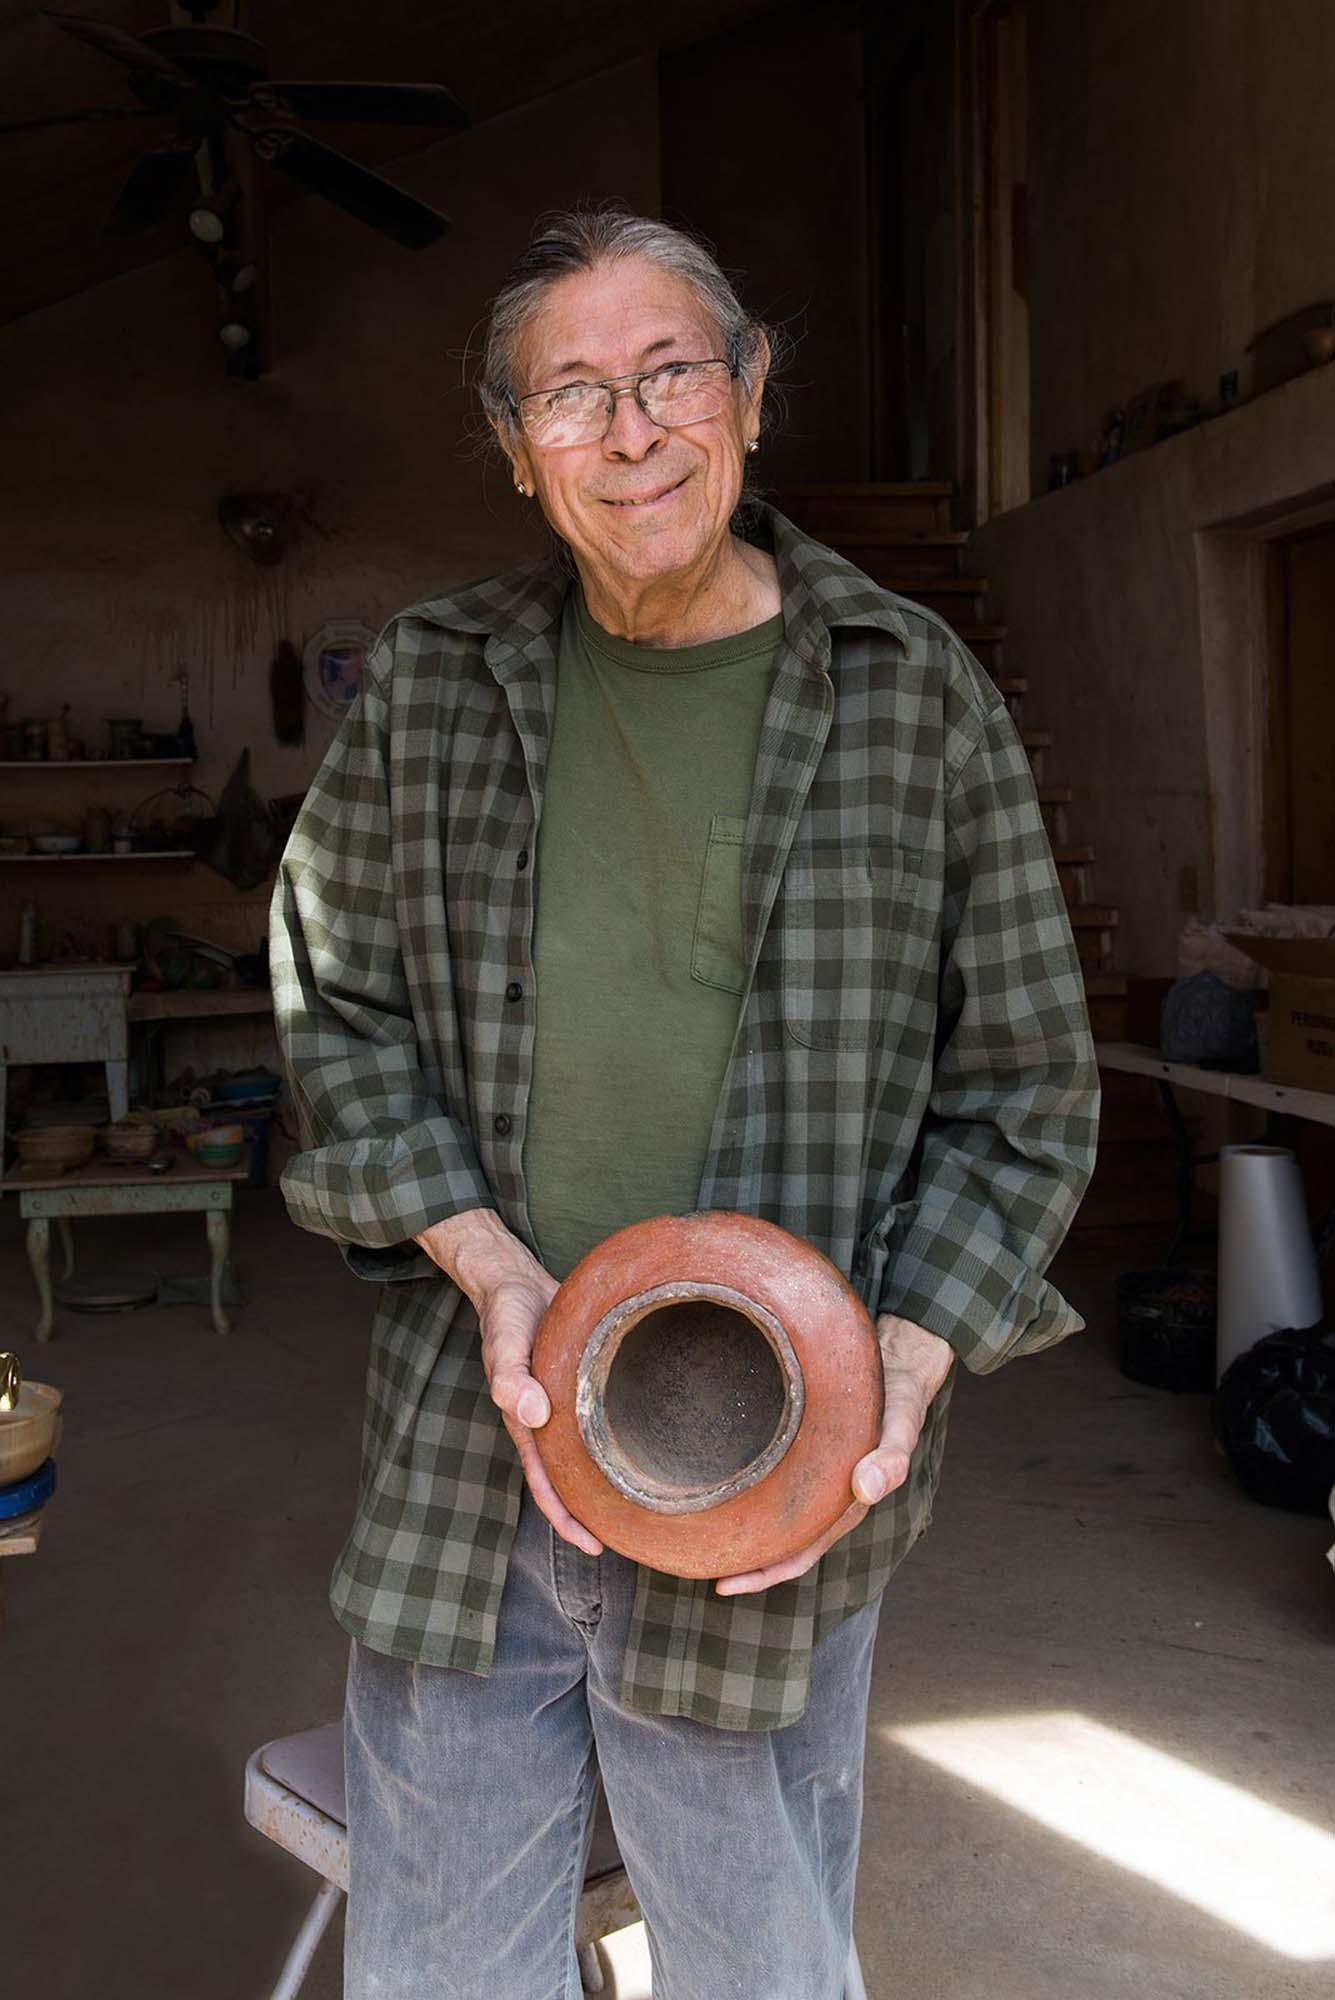 person smiling and holding a clay pot